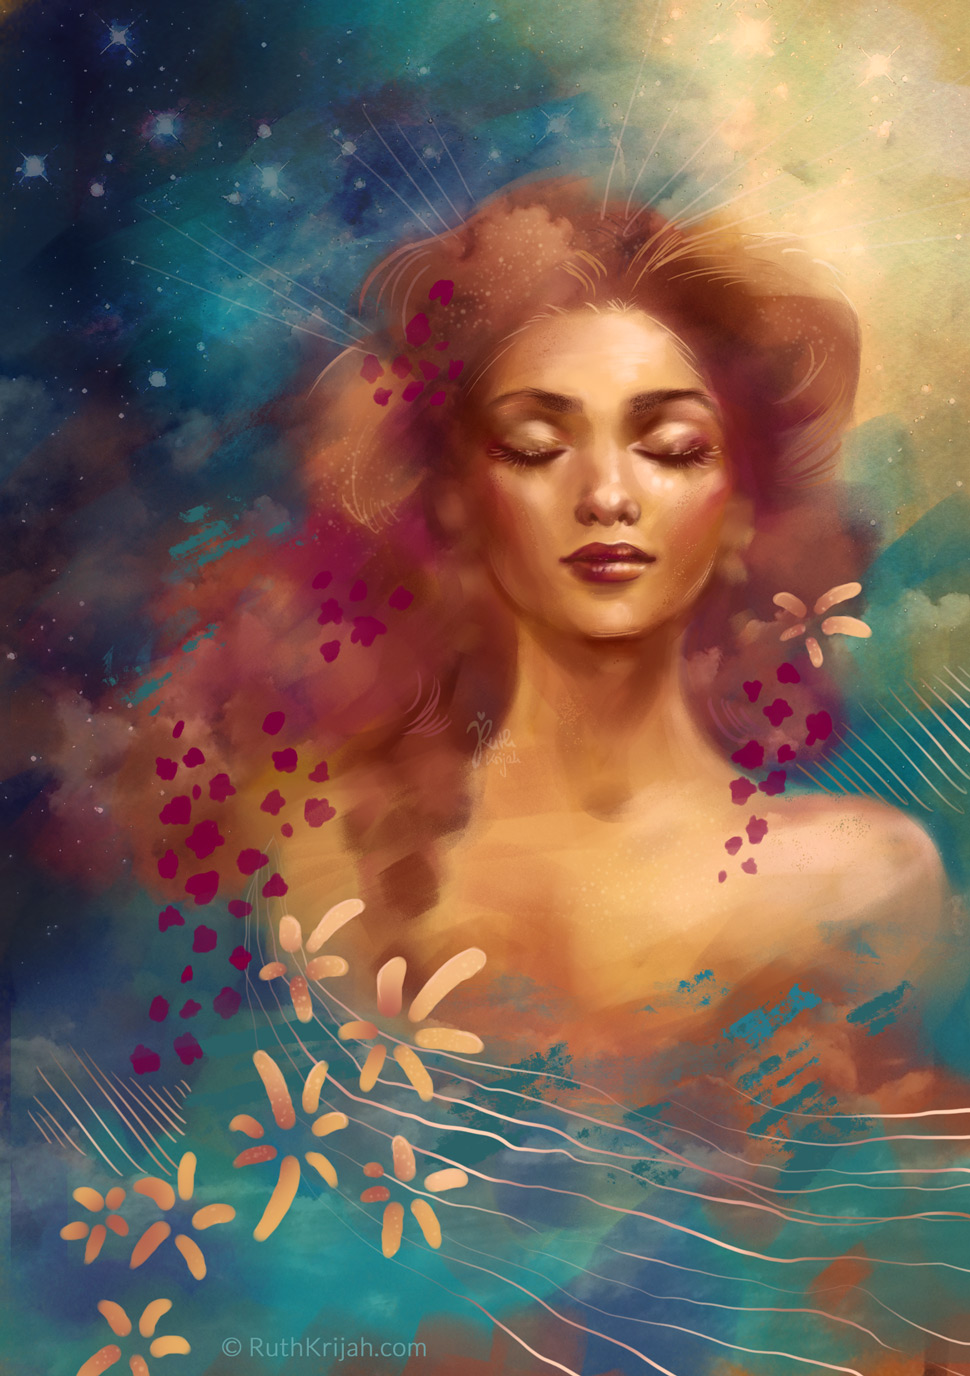 Digital Portrait of a Woman closed eyes feeling at home in the world. Stars sparkle. Inner Peace and Strength. Inner Woman Portrait. By Artist Ruth Krijah - inspired by and created for patrons at patreon.com/ruthkrijah